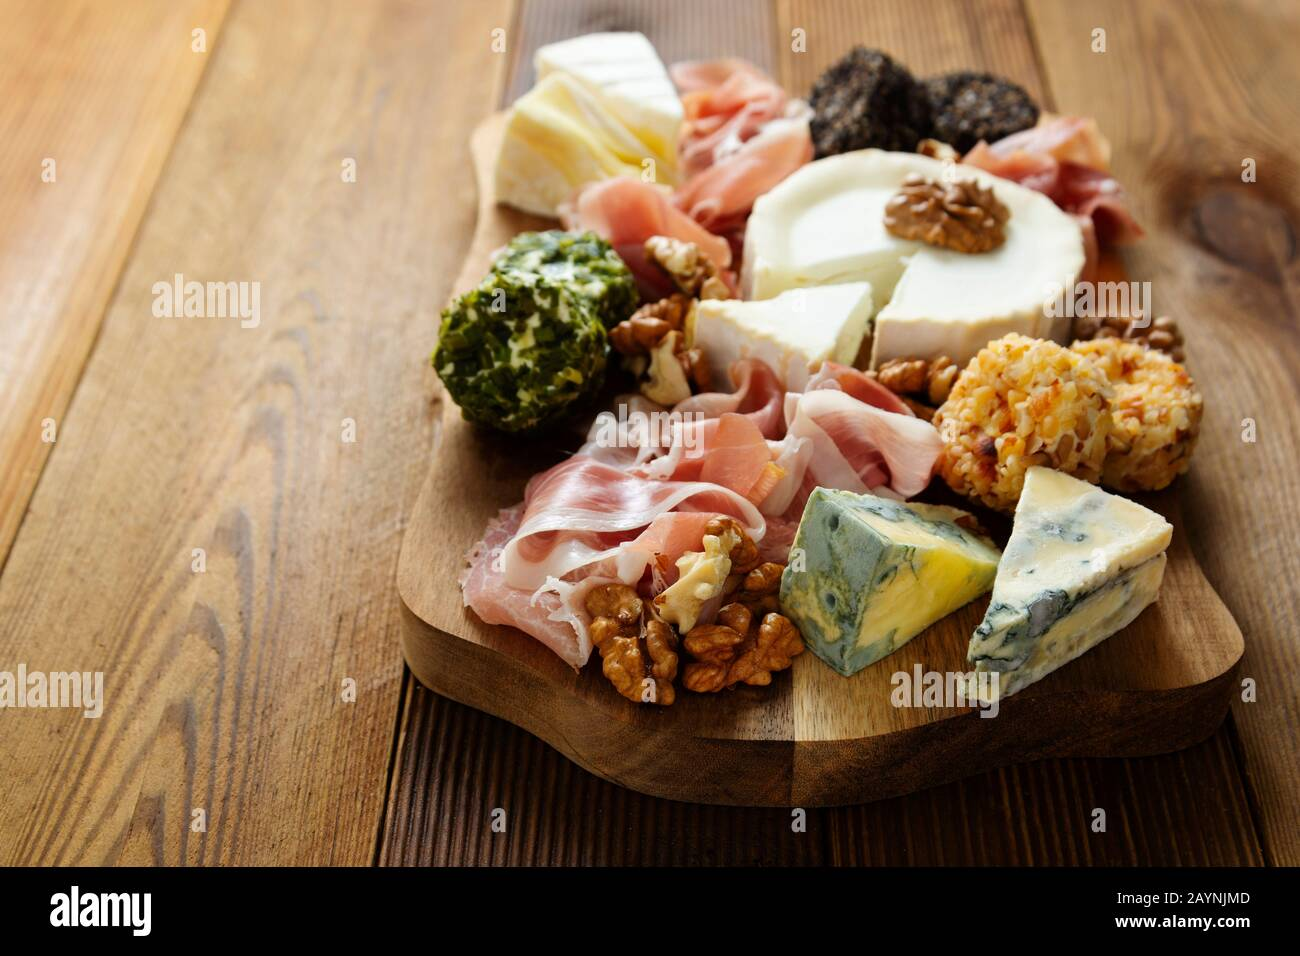 Cheese plate, various types of cheeses, grapes, walnuts and honey and prosciutto. Wooden cutting board. Stock Photo